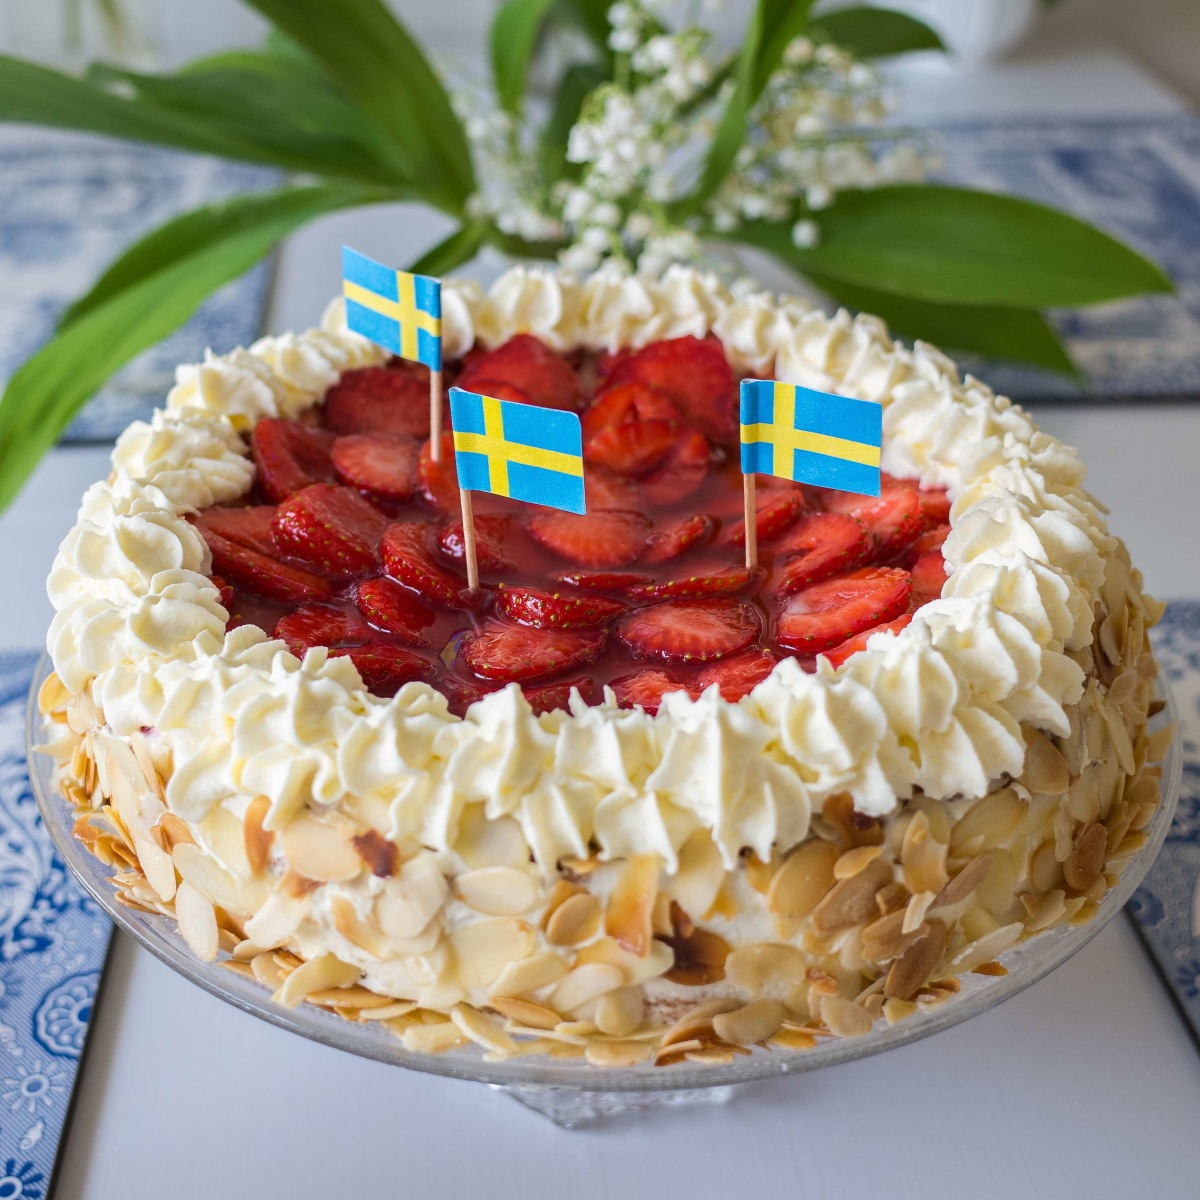 Swedish strawberry cake